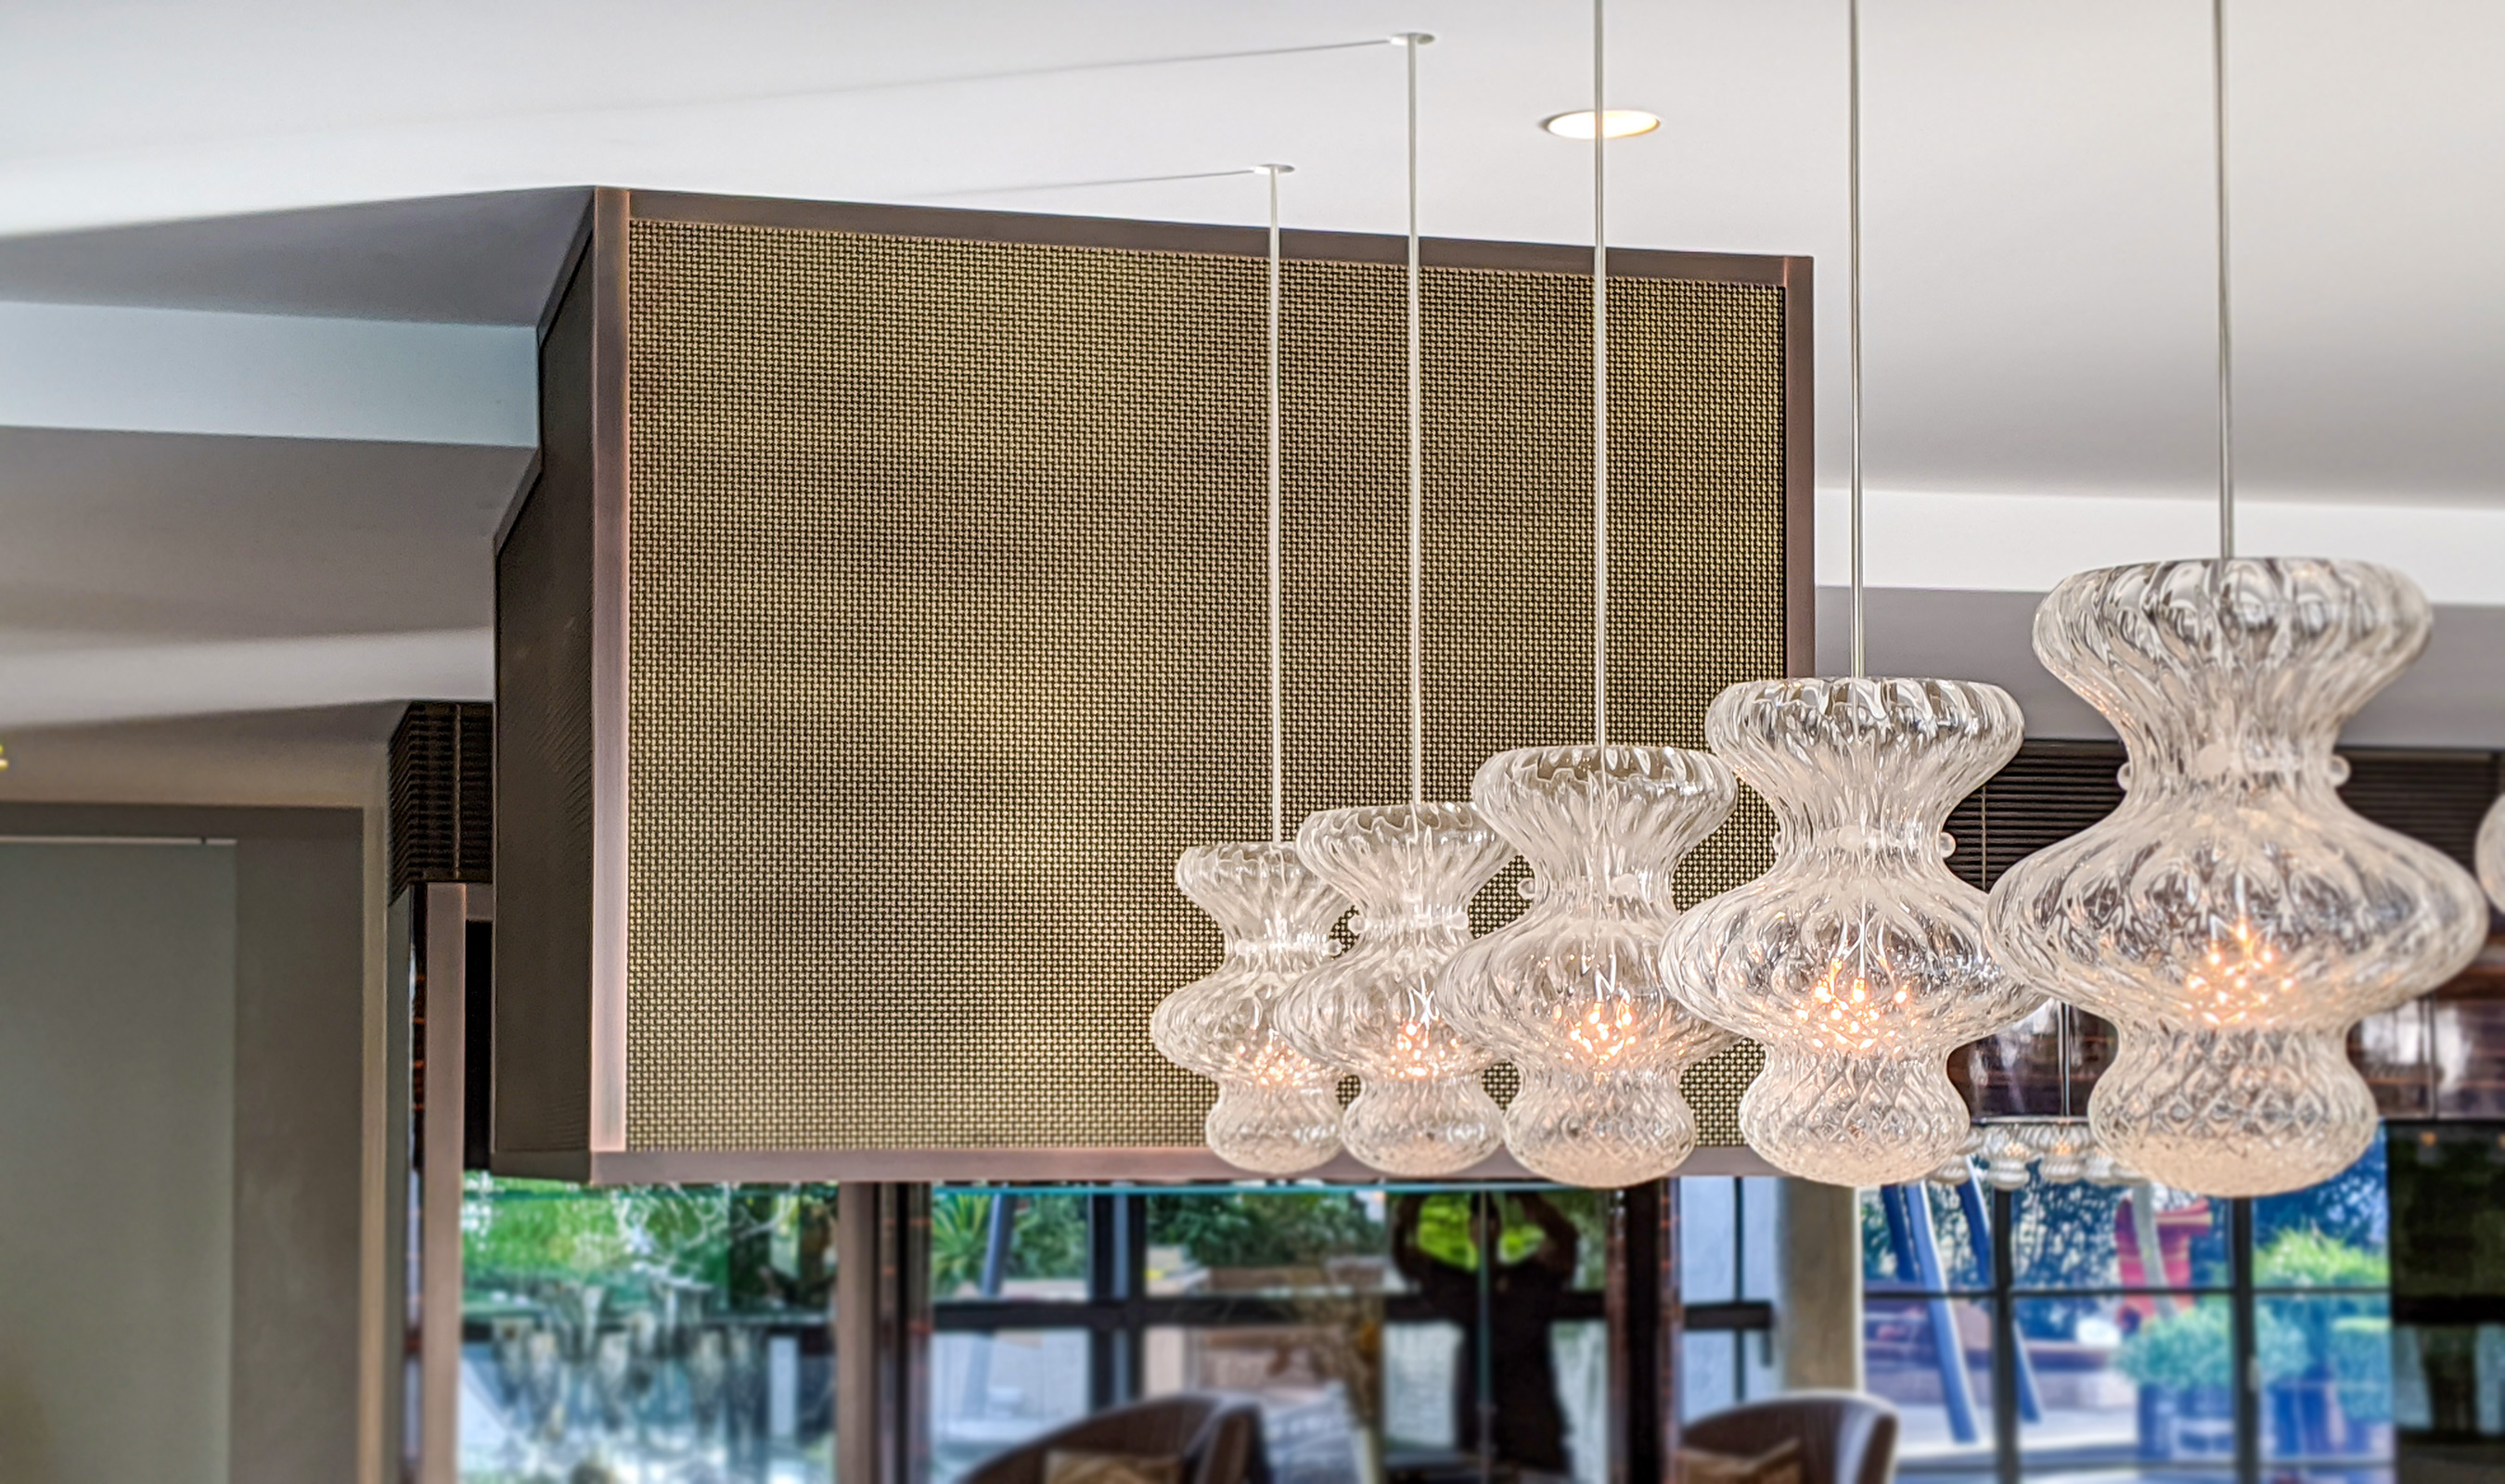 Banker Wire's S-32 woven wire mesh is used in this Sydney, Australia residence as cladding for a modern range hood.